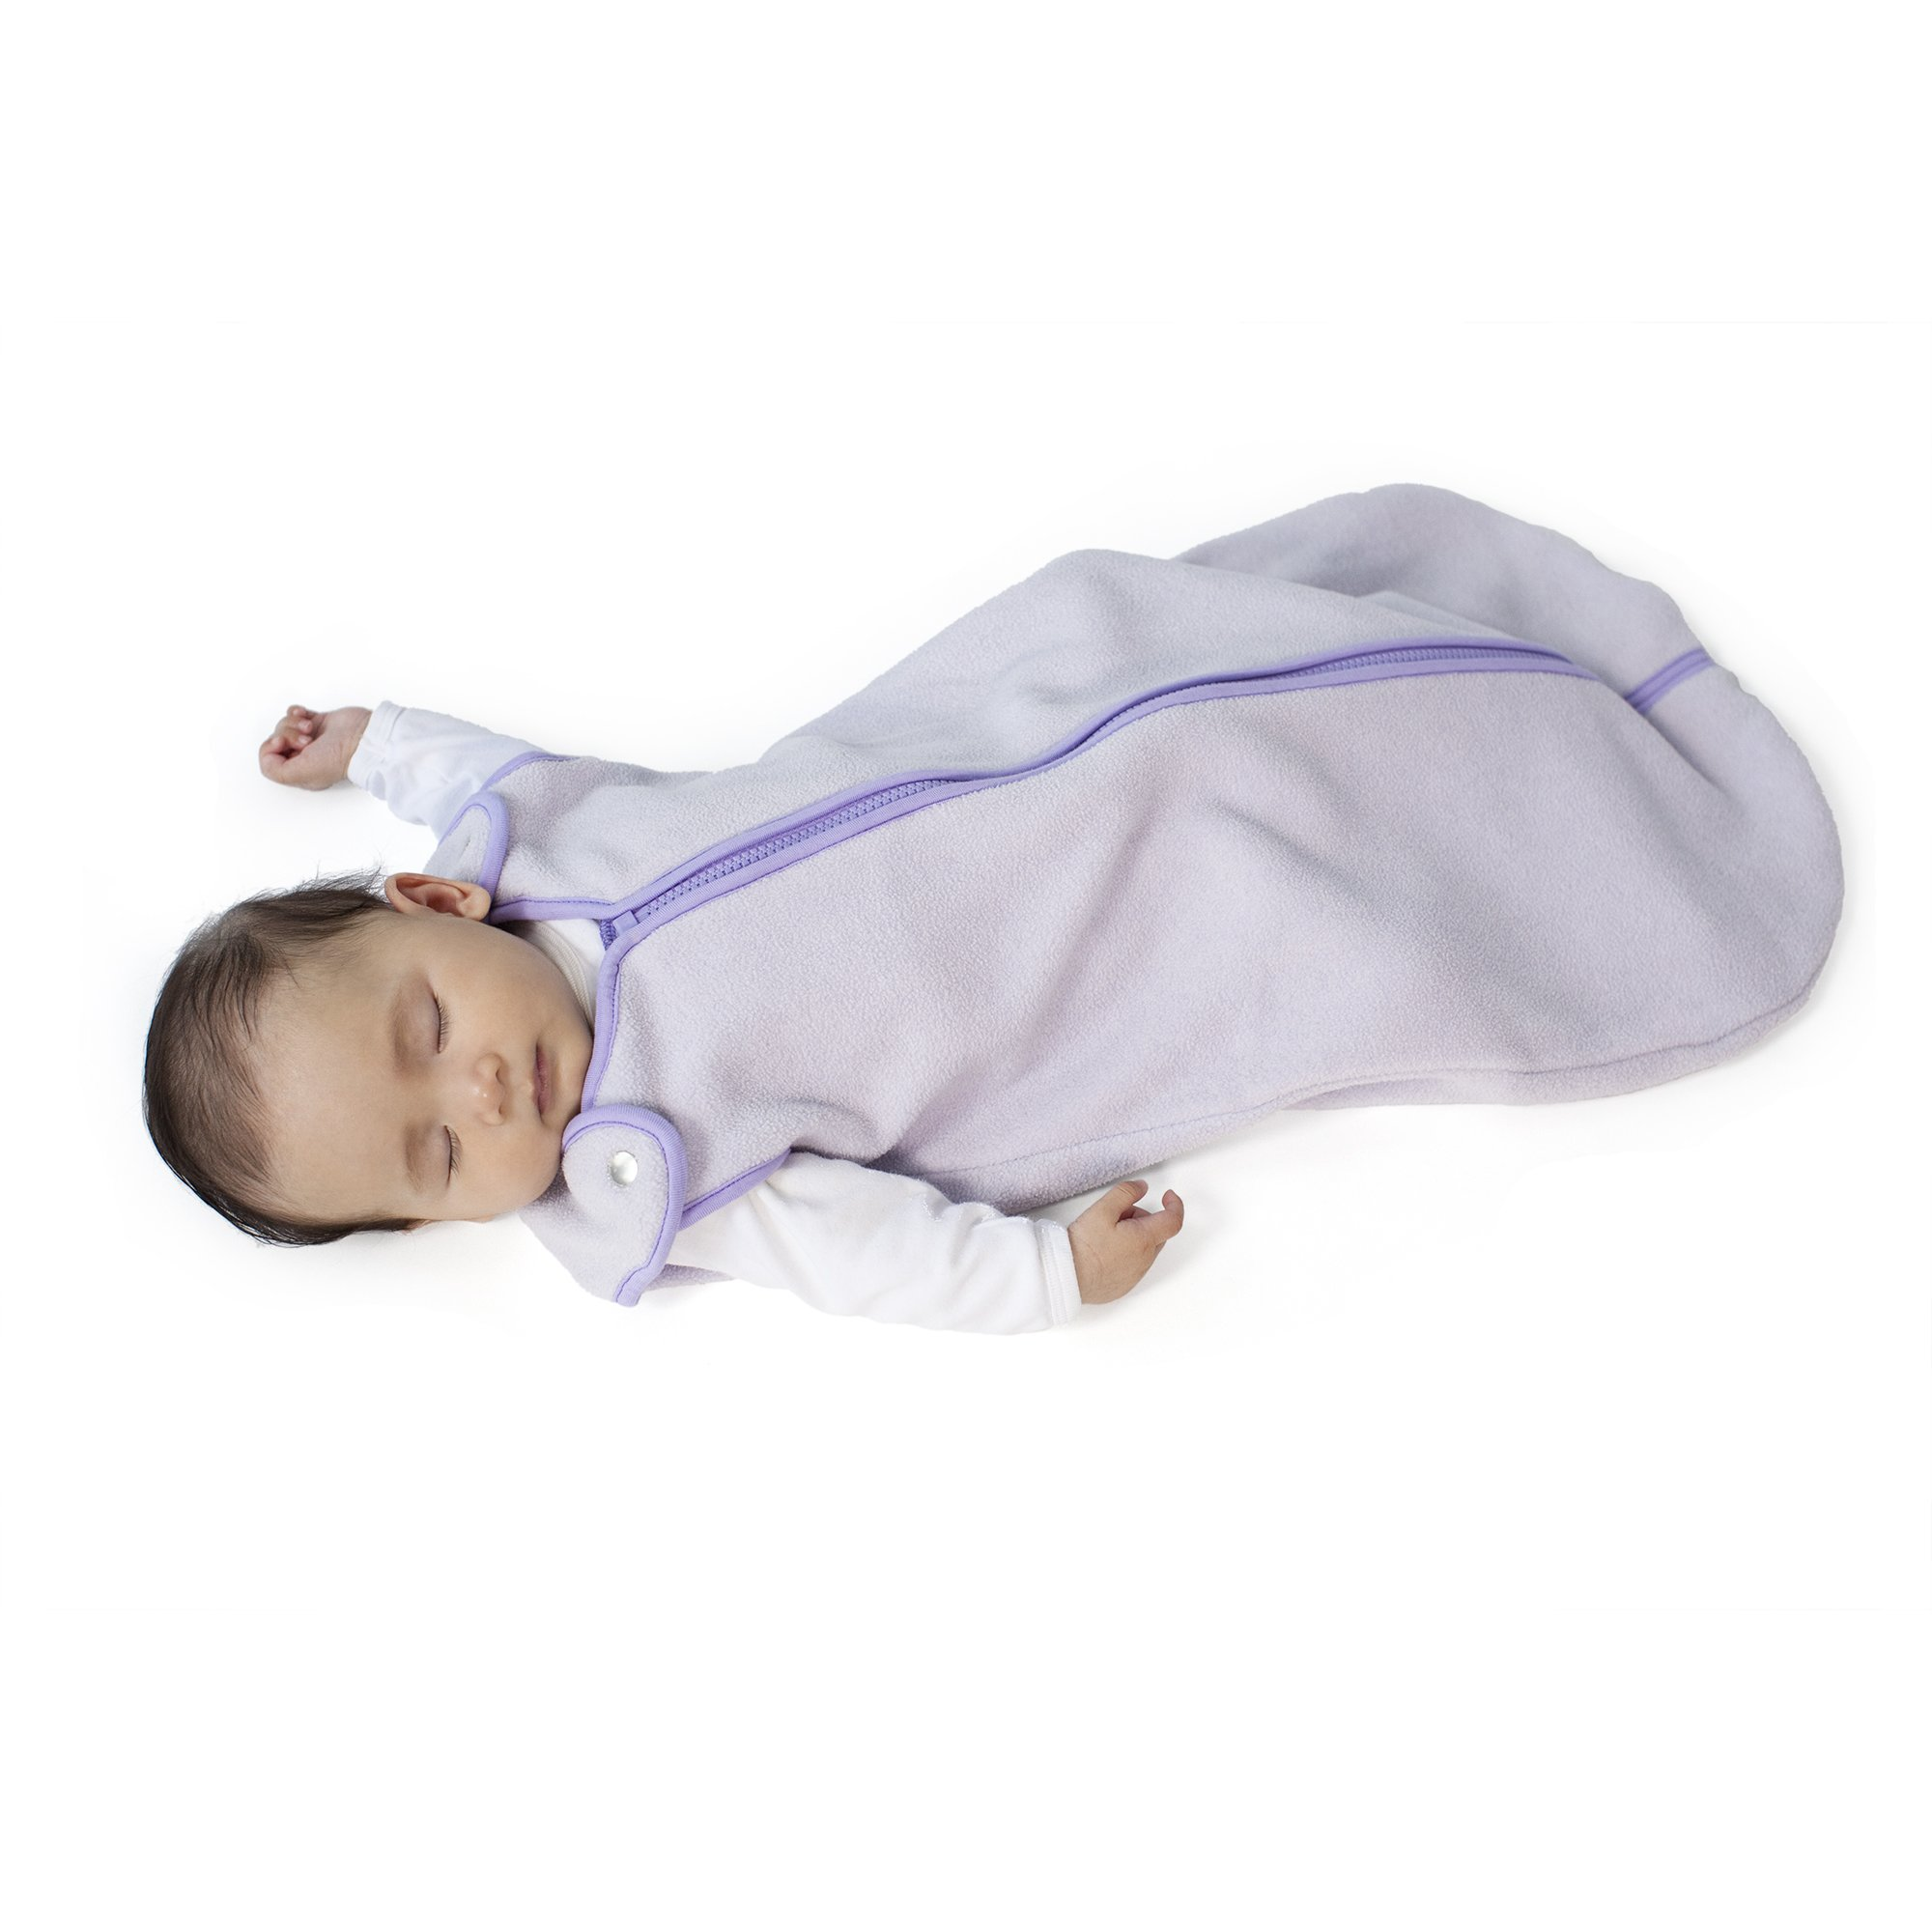 Baby Sleeping Bags & Sleepsacks Have An Inquiring Mind Sleeping Bag 18-36 Months 2.5 Tog Grade Products According To Quality